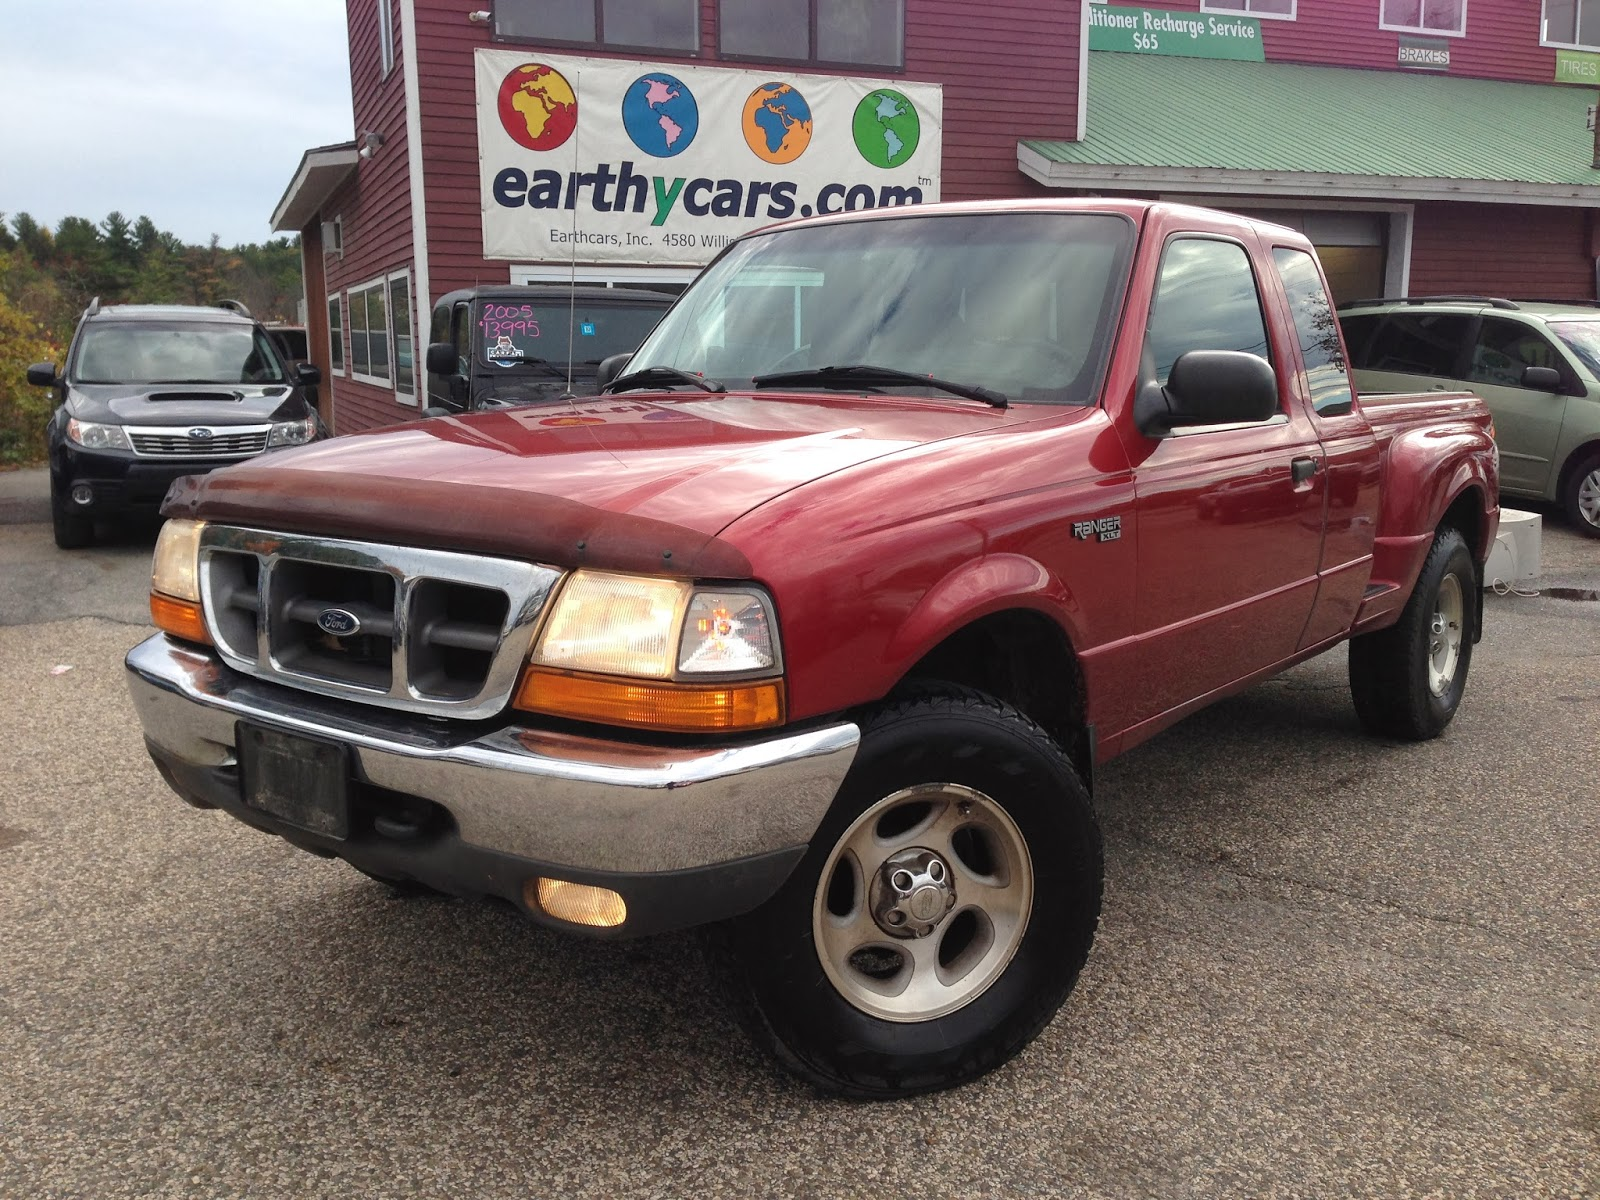 earthy cars blog earthy car of the week 1999 ford explorer 4x4 earthy cars blog blogger